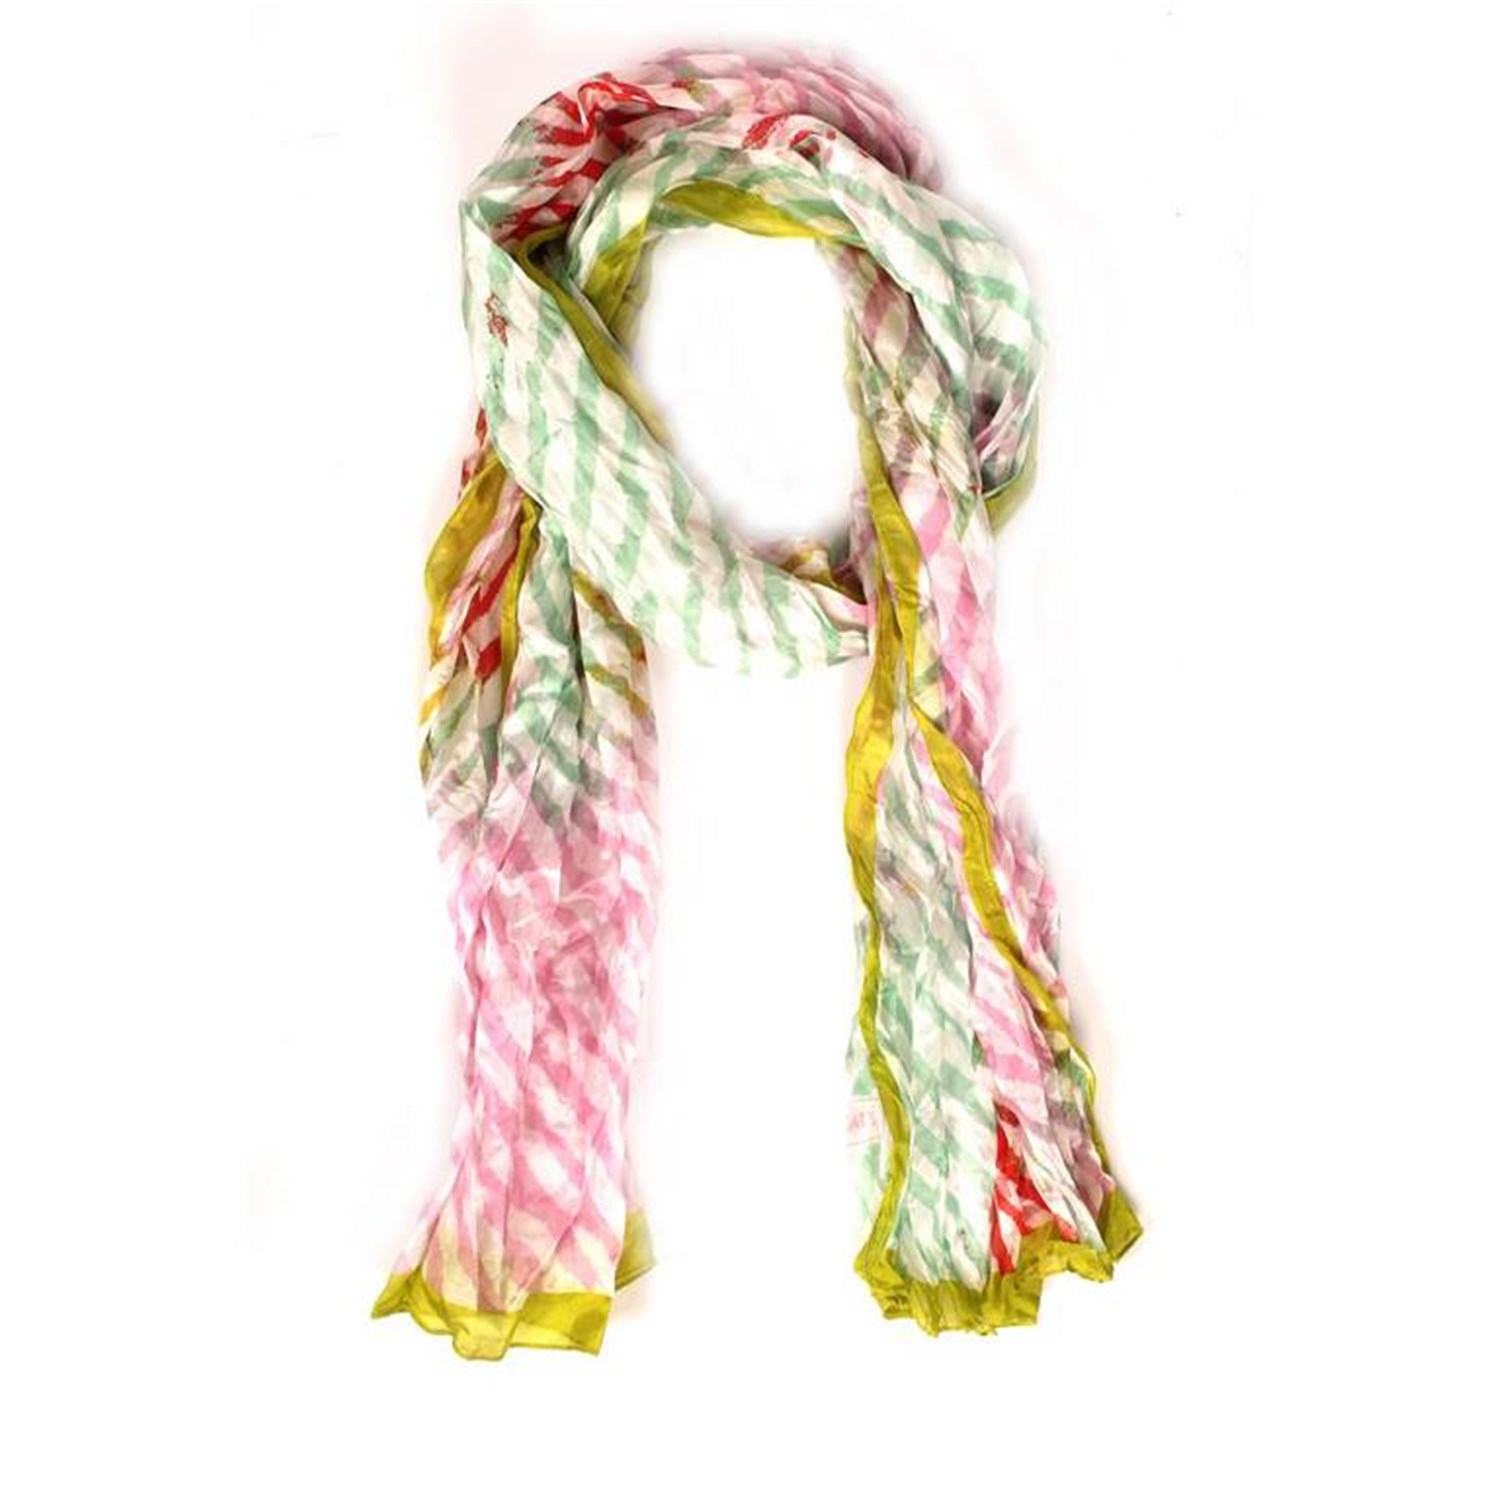 Passigatti Accessories Accessories Scarves 11124